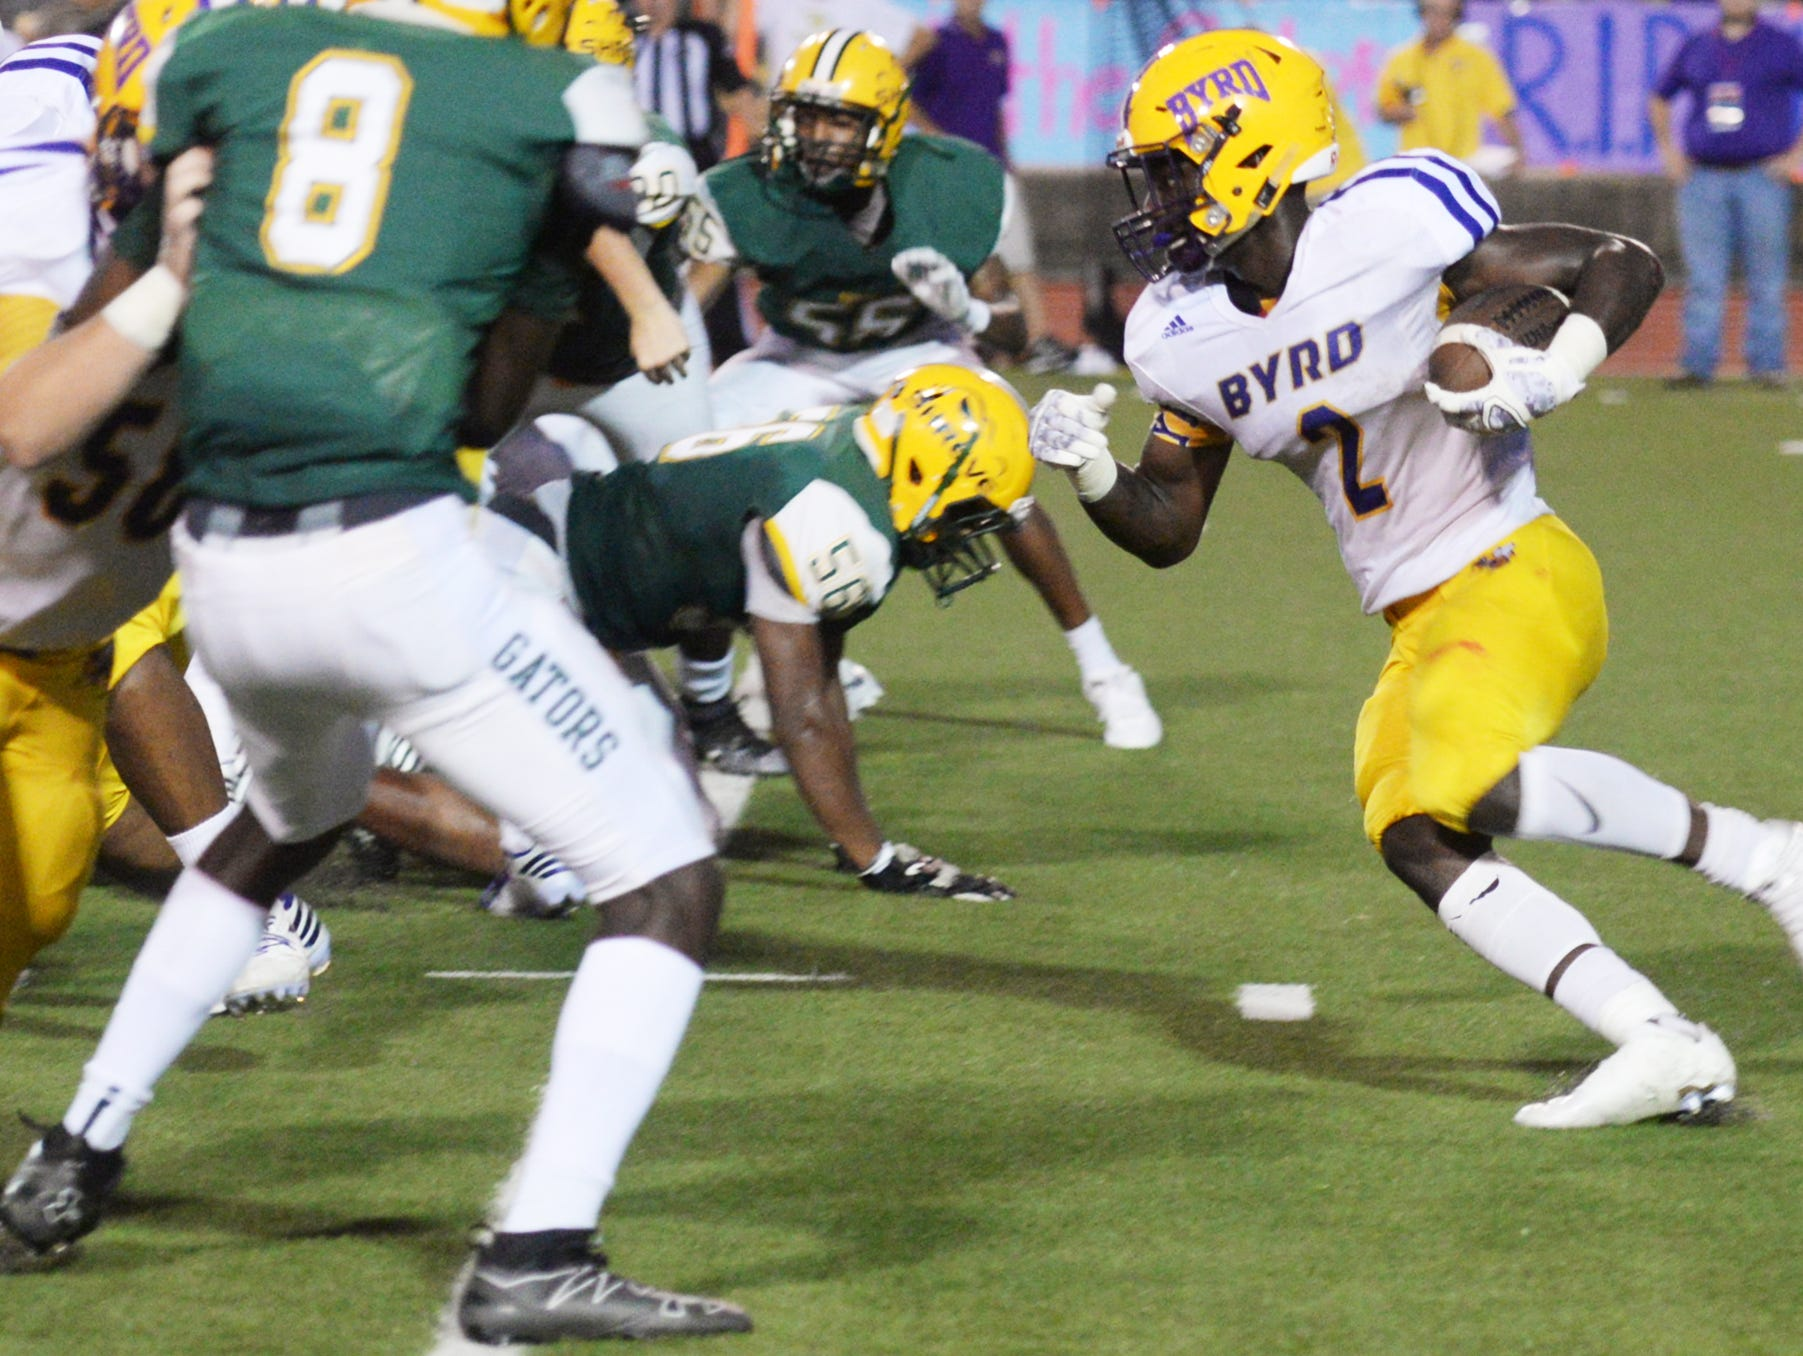 Byrd's Javien Wilson runs with the ball Thursday evening at Lee Hedges Stadium.